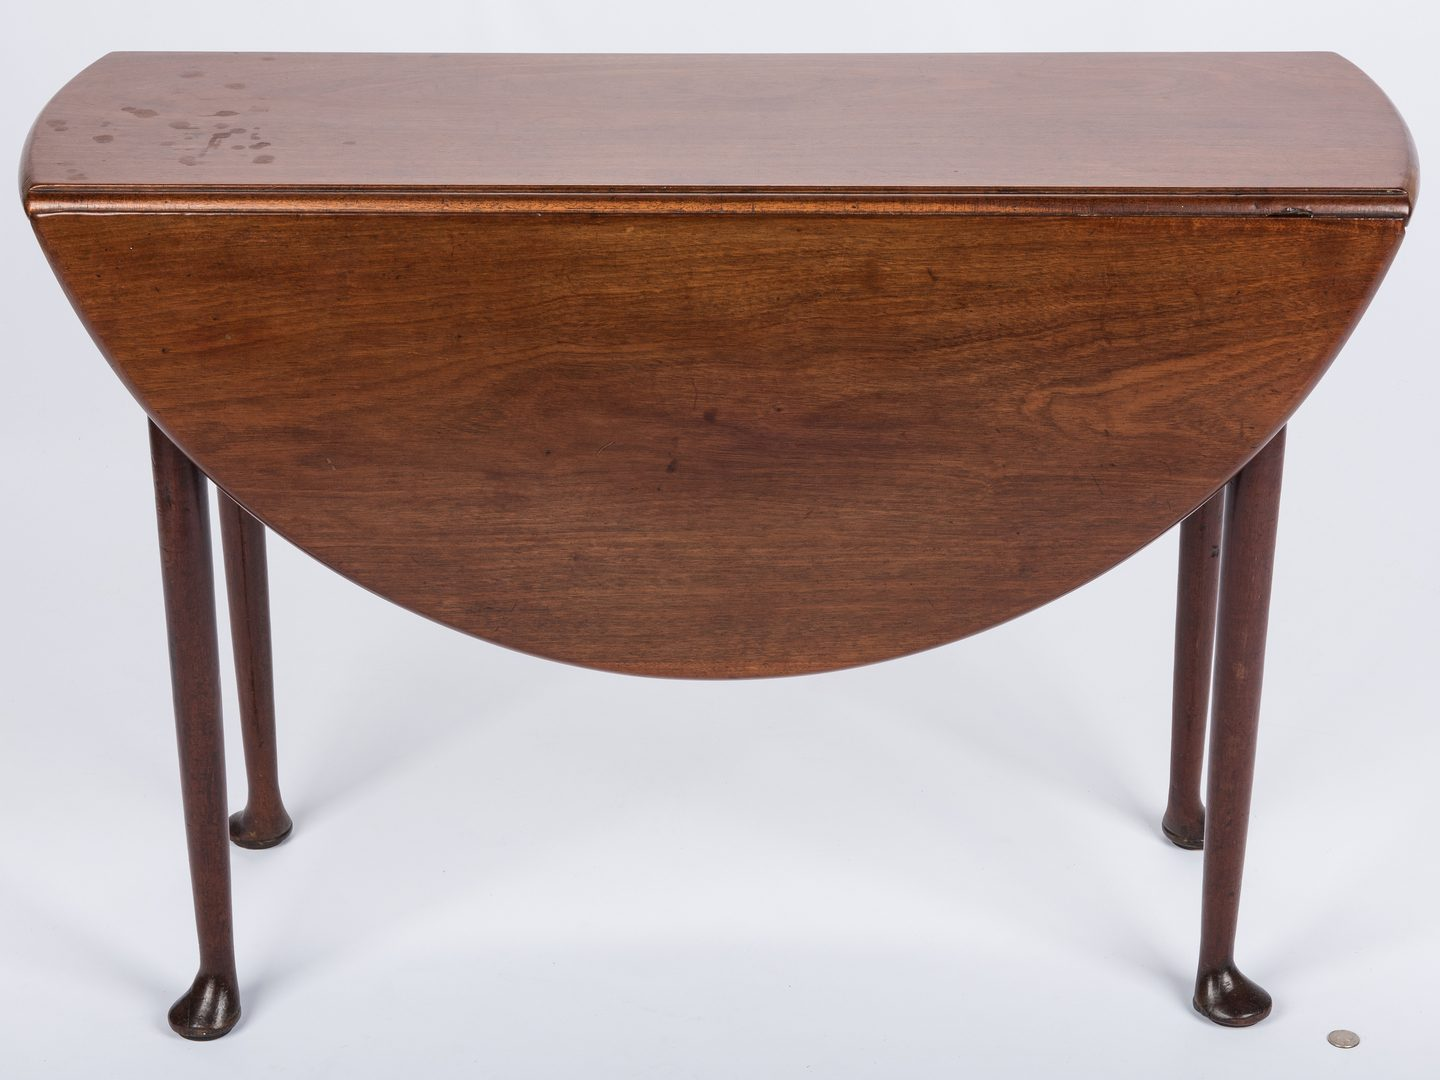 Lot 647: Diminutive Queen Anne Dropleaf Table